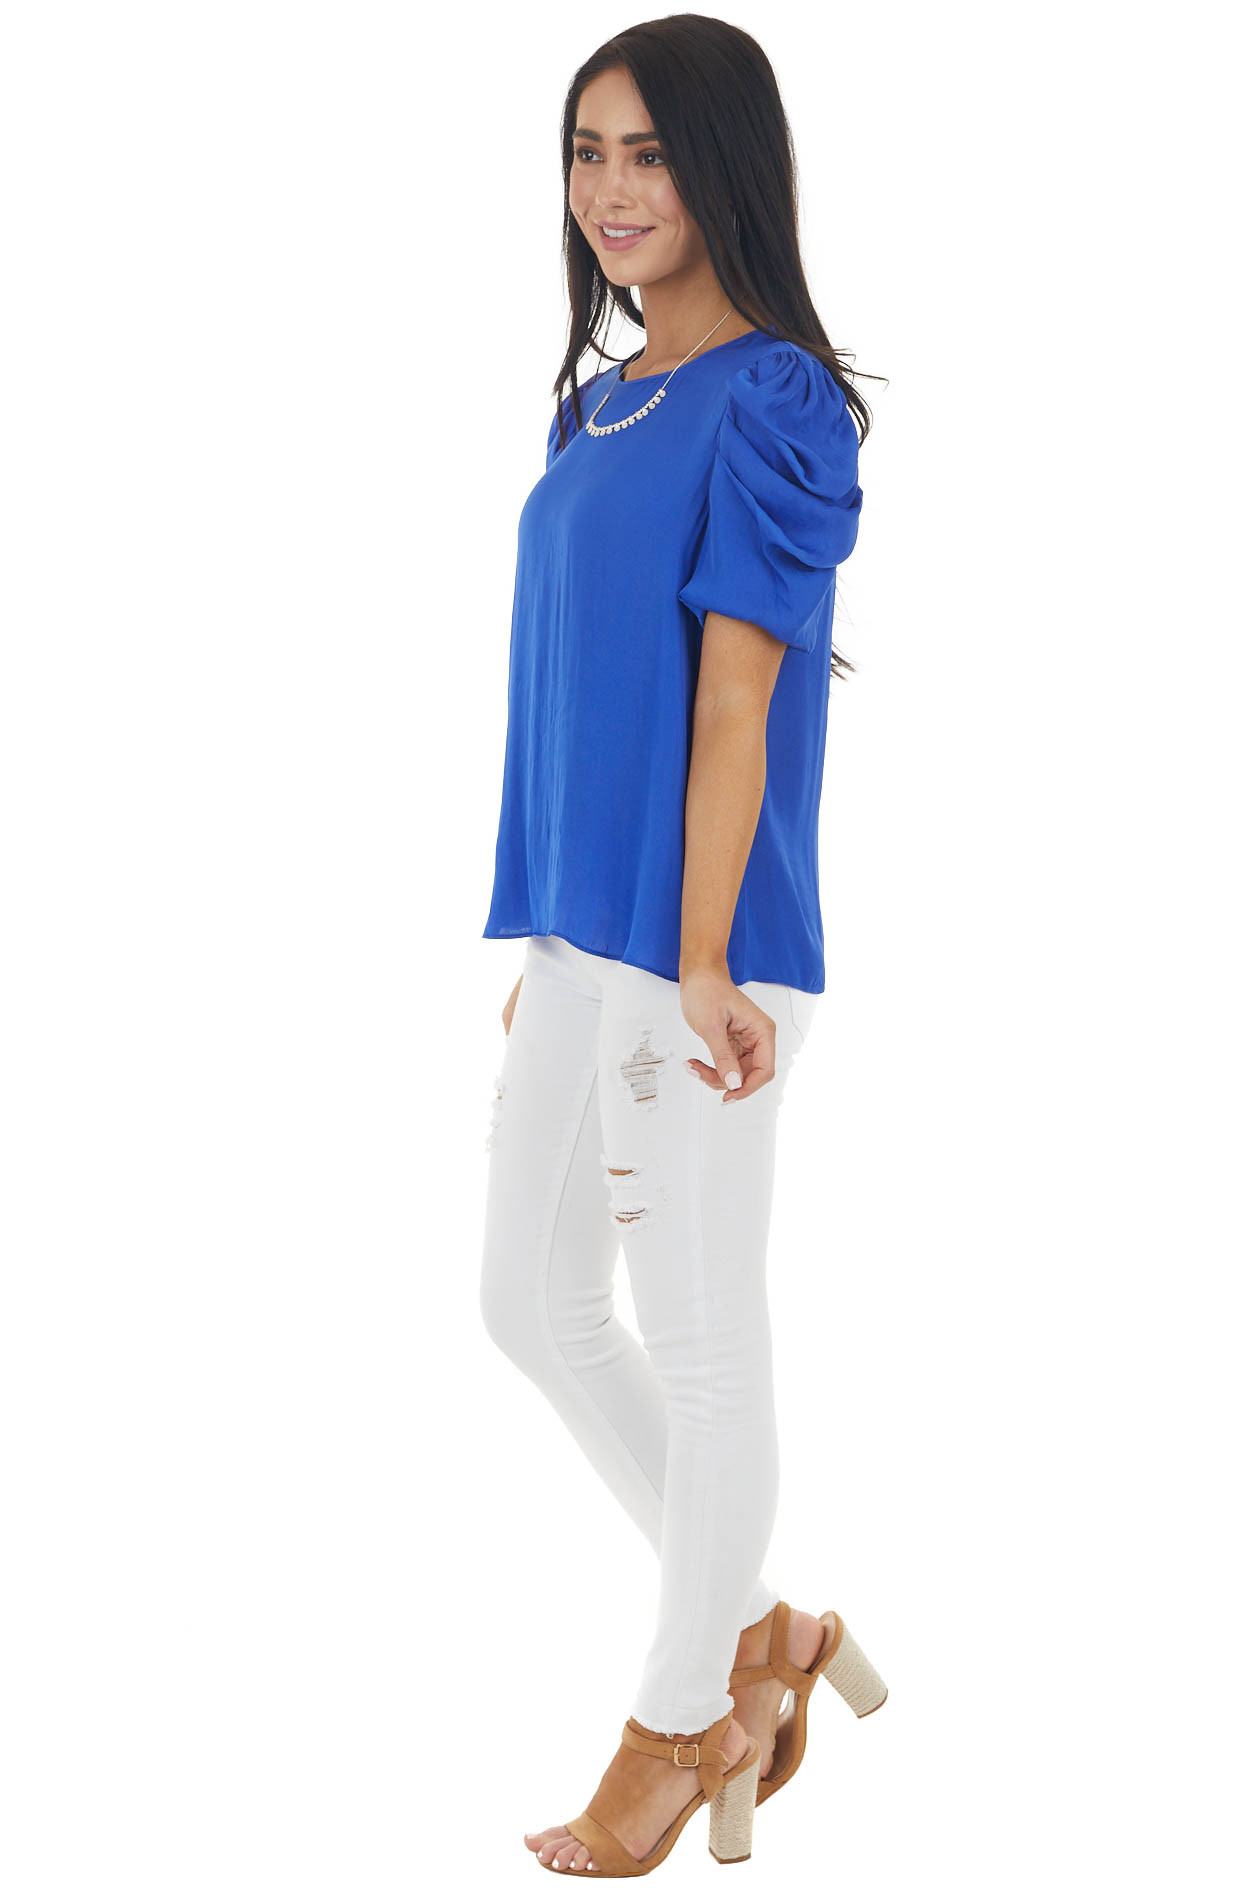 Royal Blue Silky Woven Top with Puffy Pleated Cap Sleeves